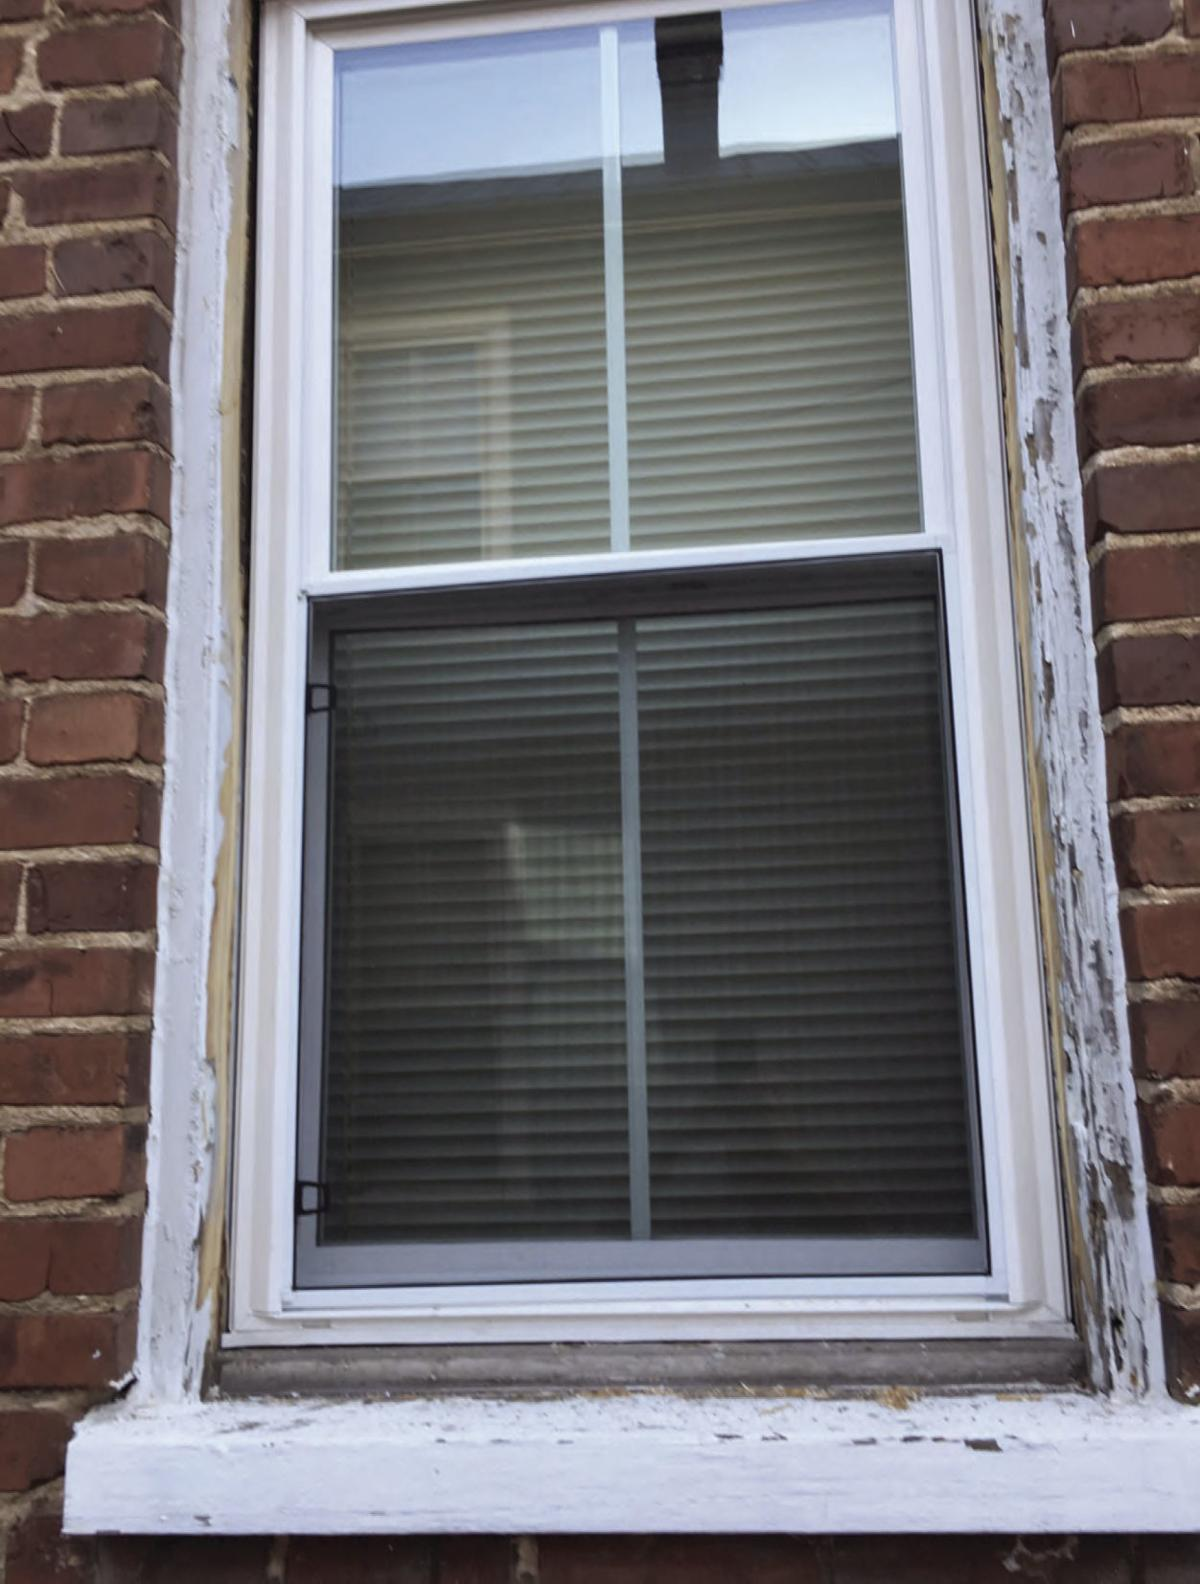 Installed In 2016 A Home On East Street The Culpeper Historic District These Vinyl Windows According To Town Officials Are Out Of Compliance With